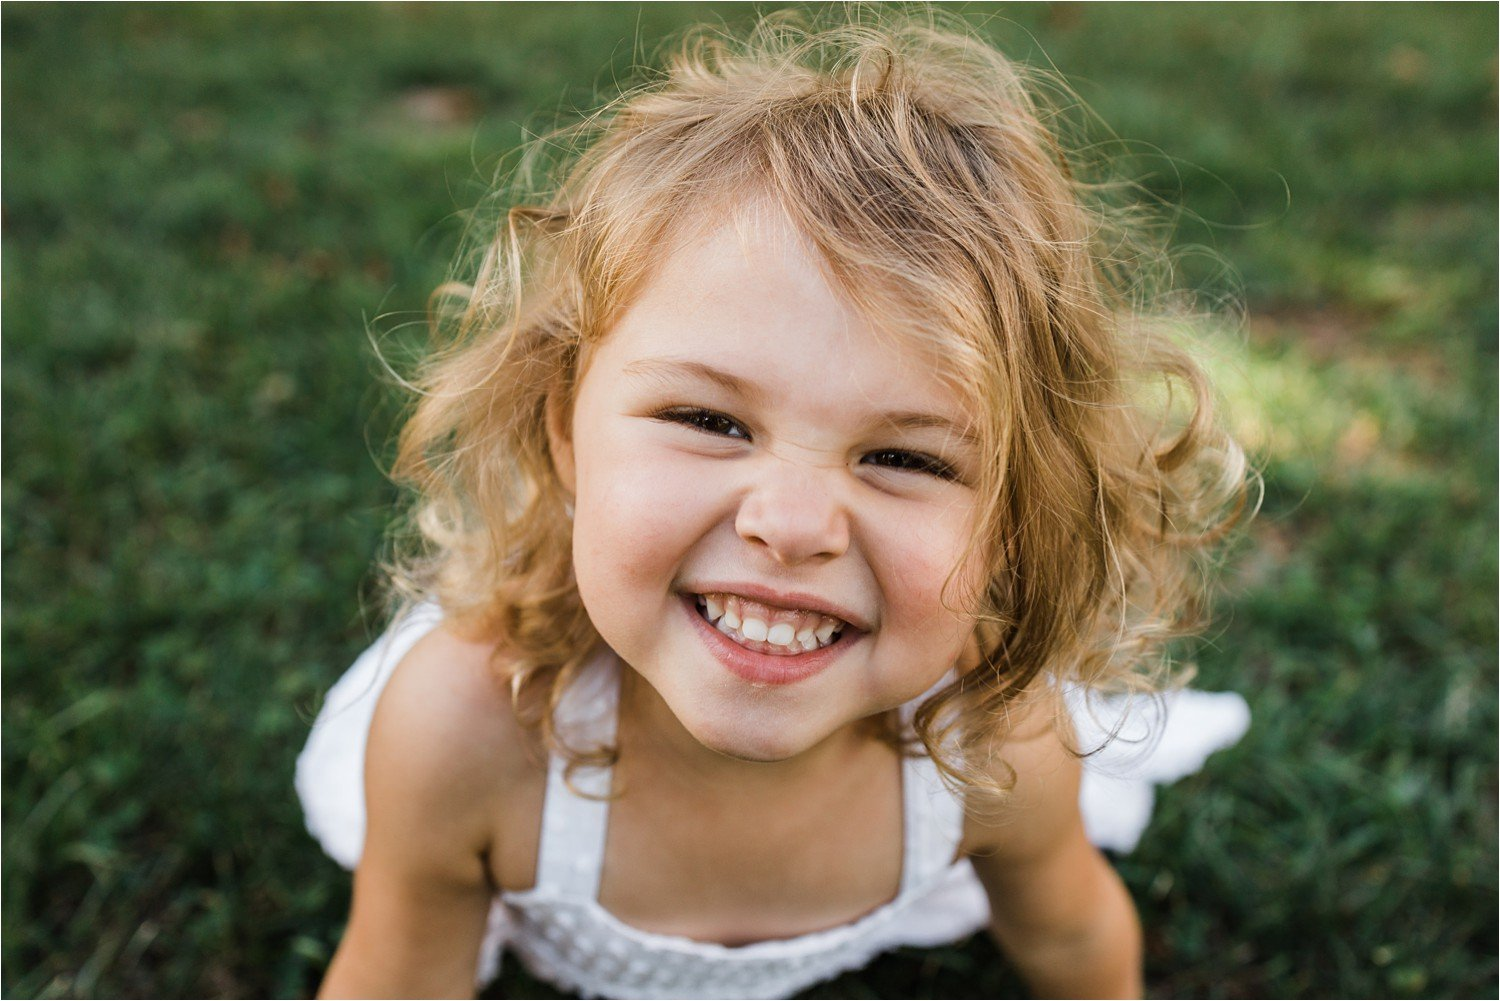 big smile on a little girl close up photo